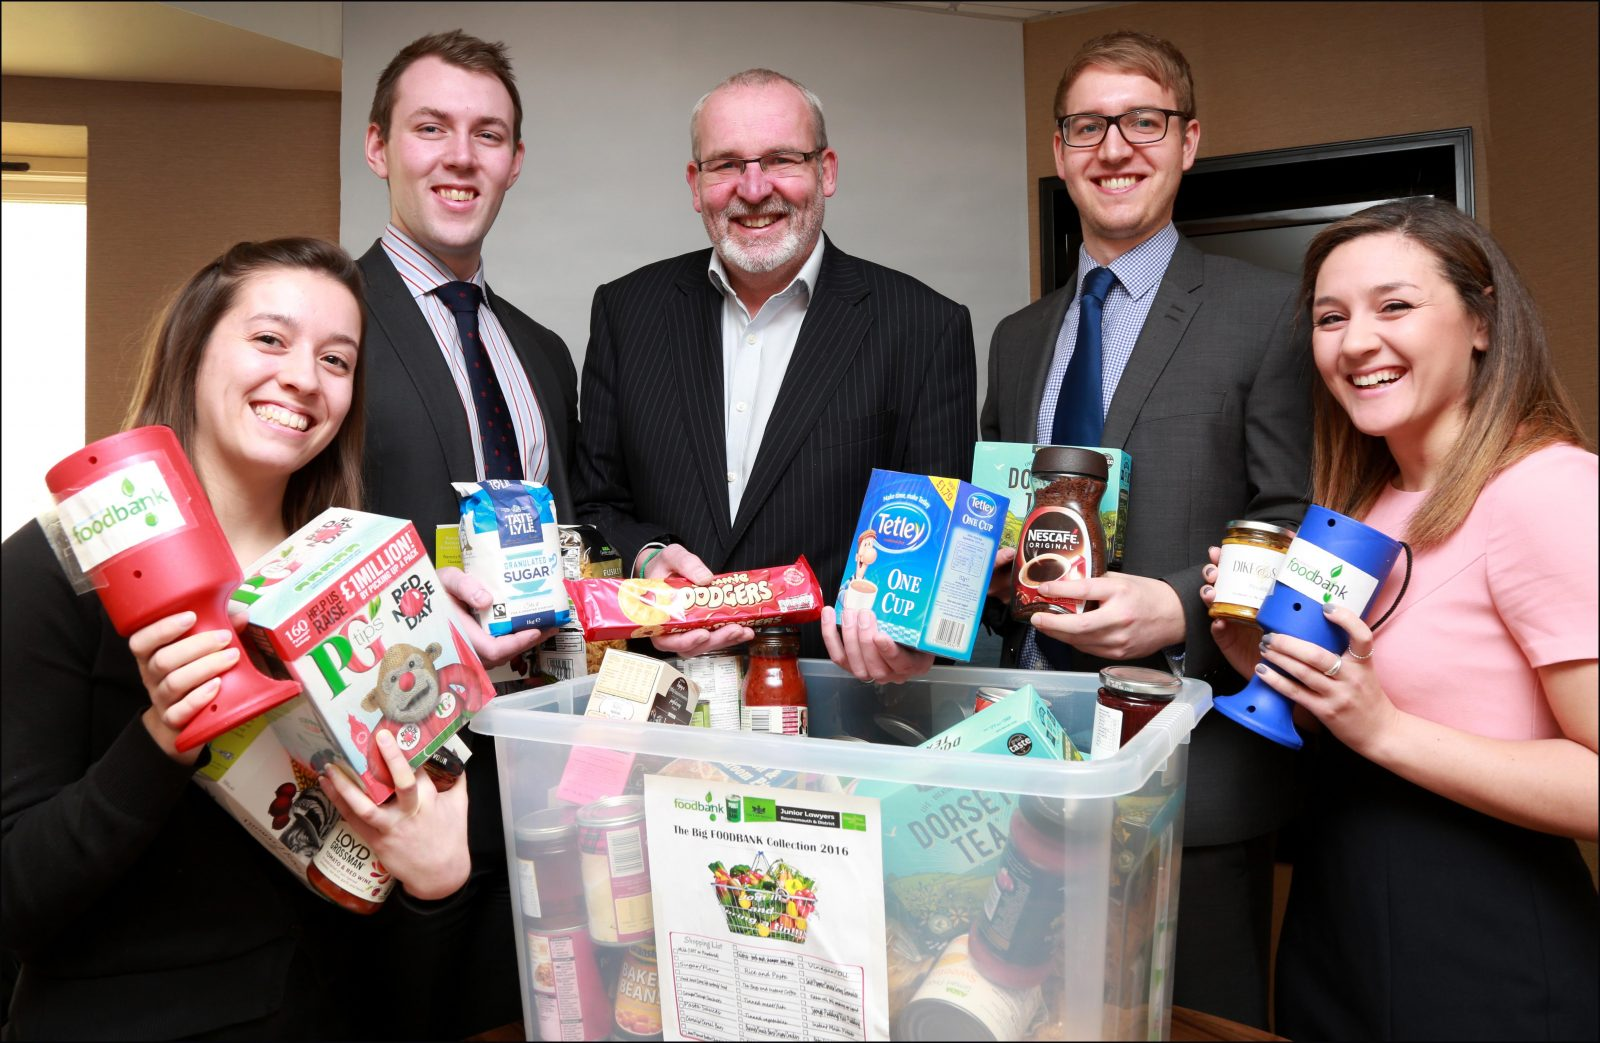 Ellis Jones' Managing Partner Nigel Smith with (left to right) Annie James, Simon Beetham, Mark Stutter, Bethanie Watson and some of the items donated to Bournemouth Foodbank.